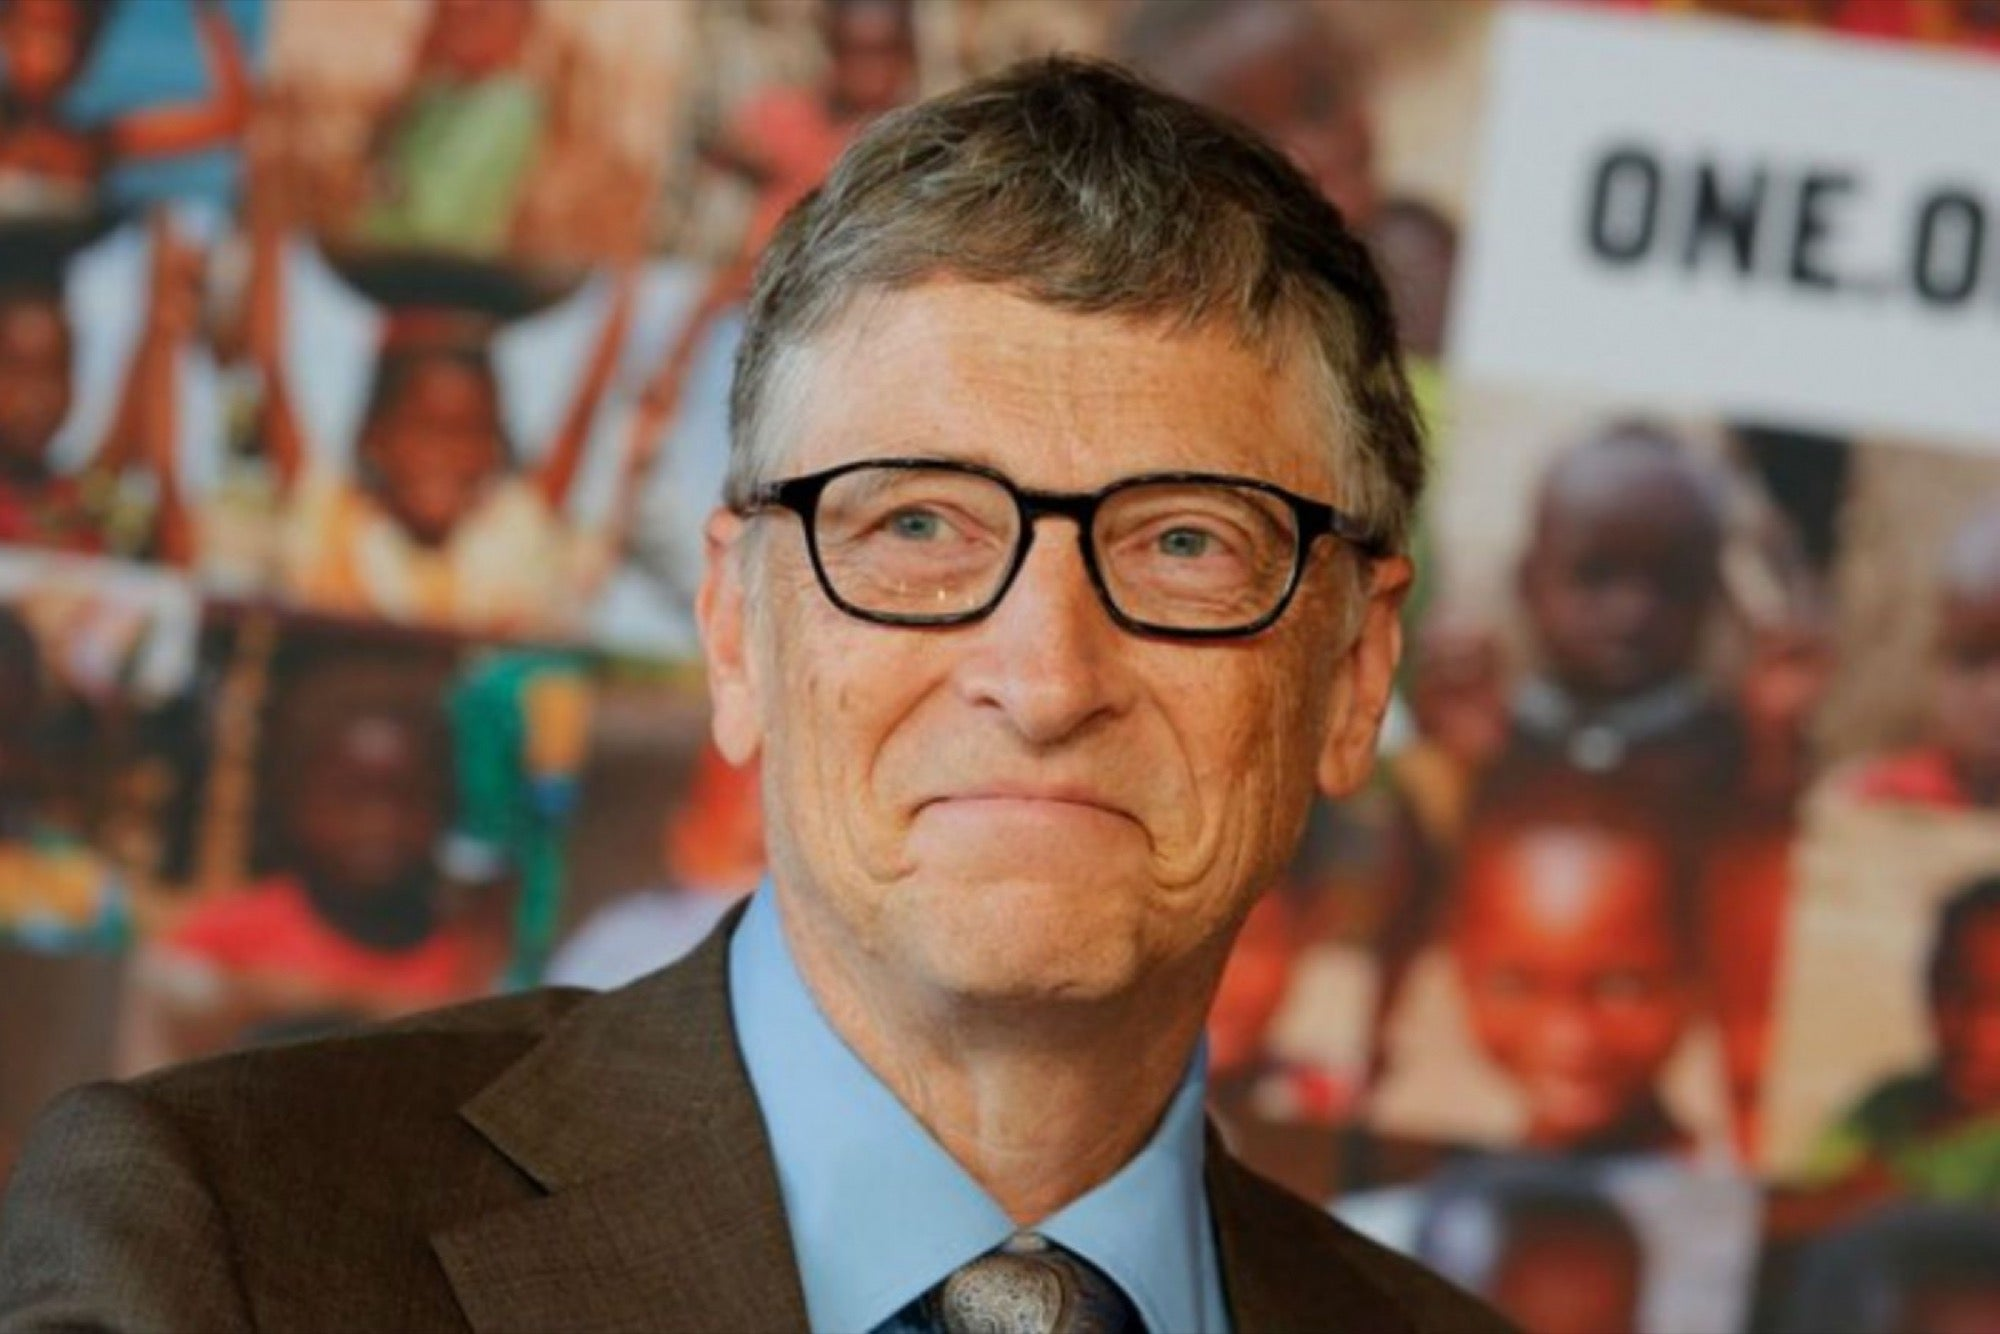 There's No Vacation and No Rest After Starting a Business, Says Bill Gates